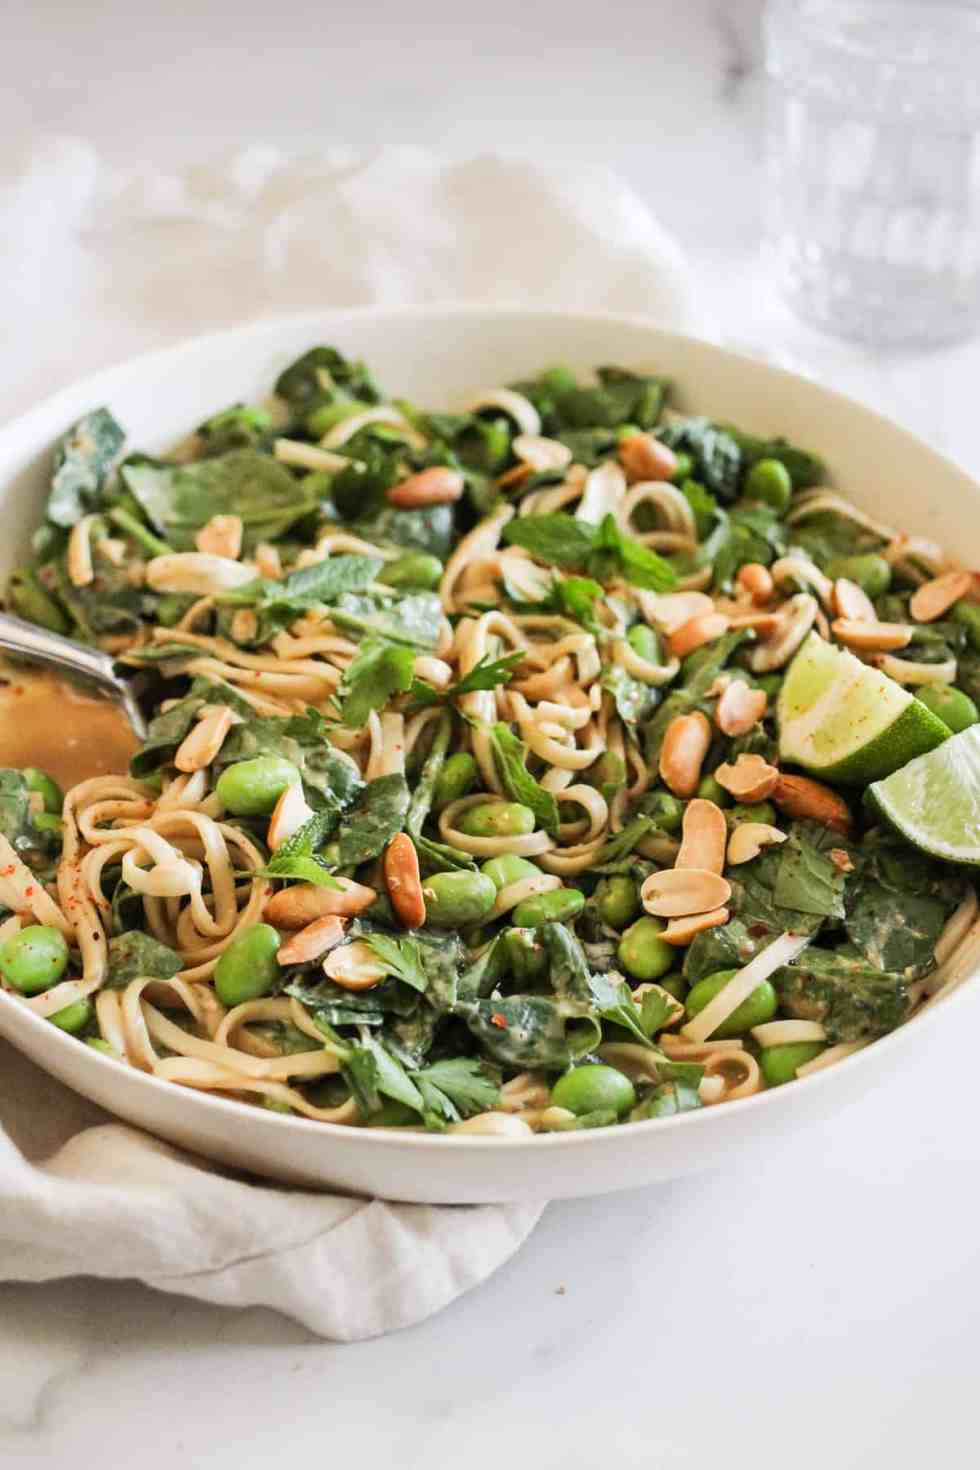 Closeup image of peanut noodles with edamame in a white bowl.